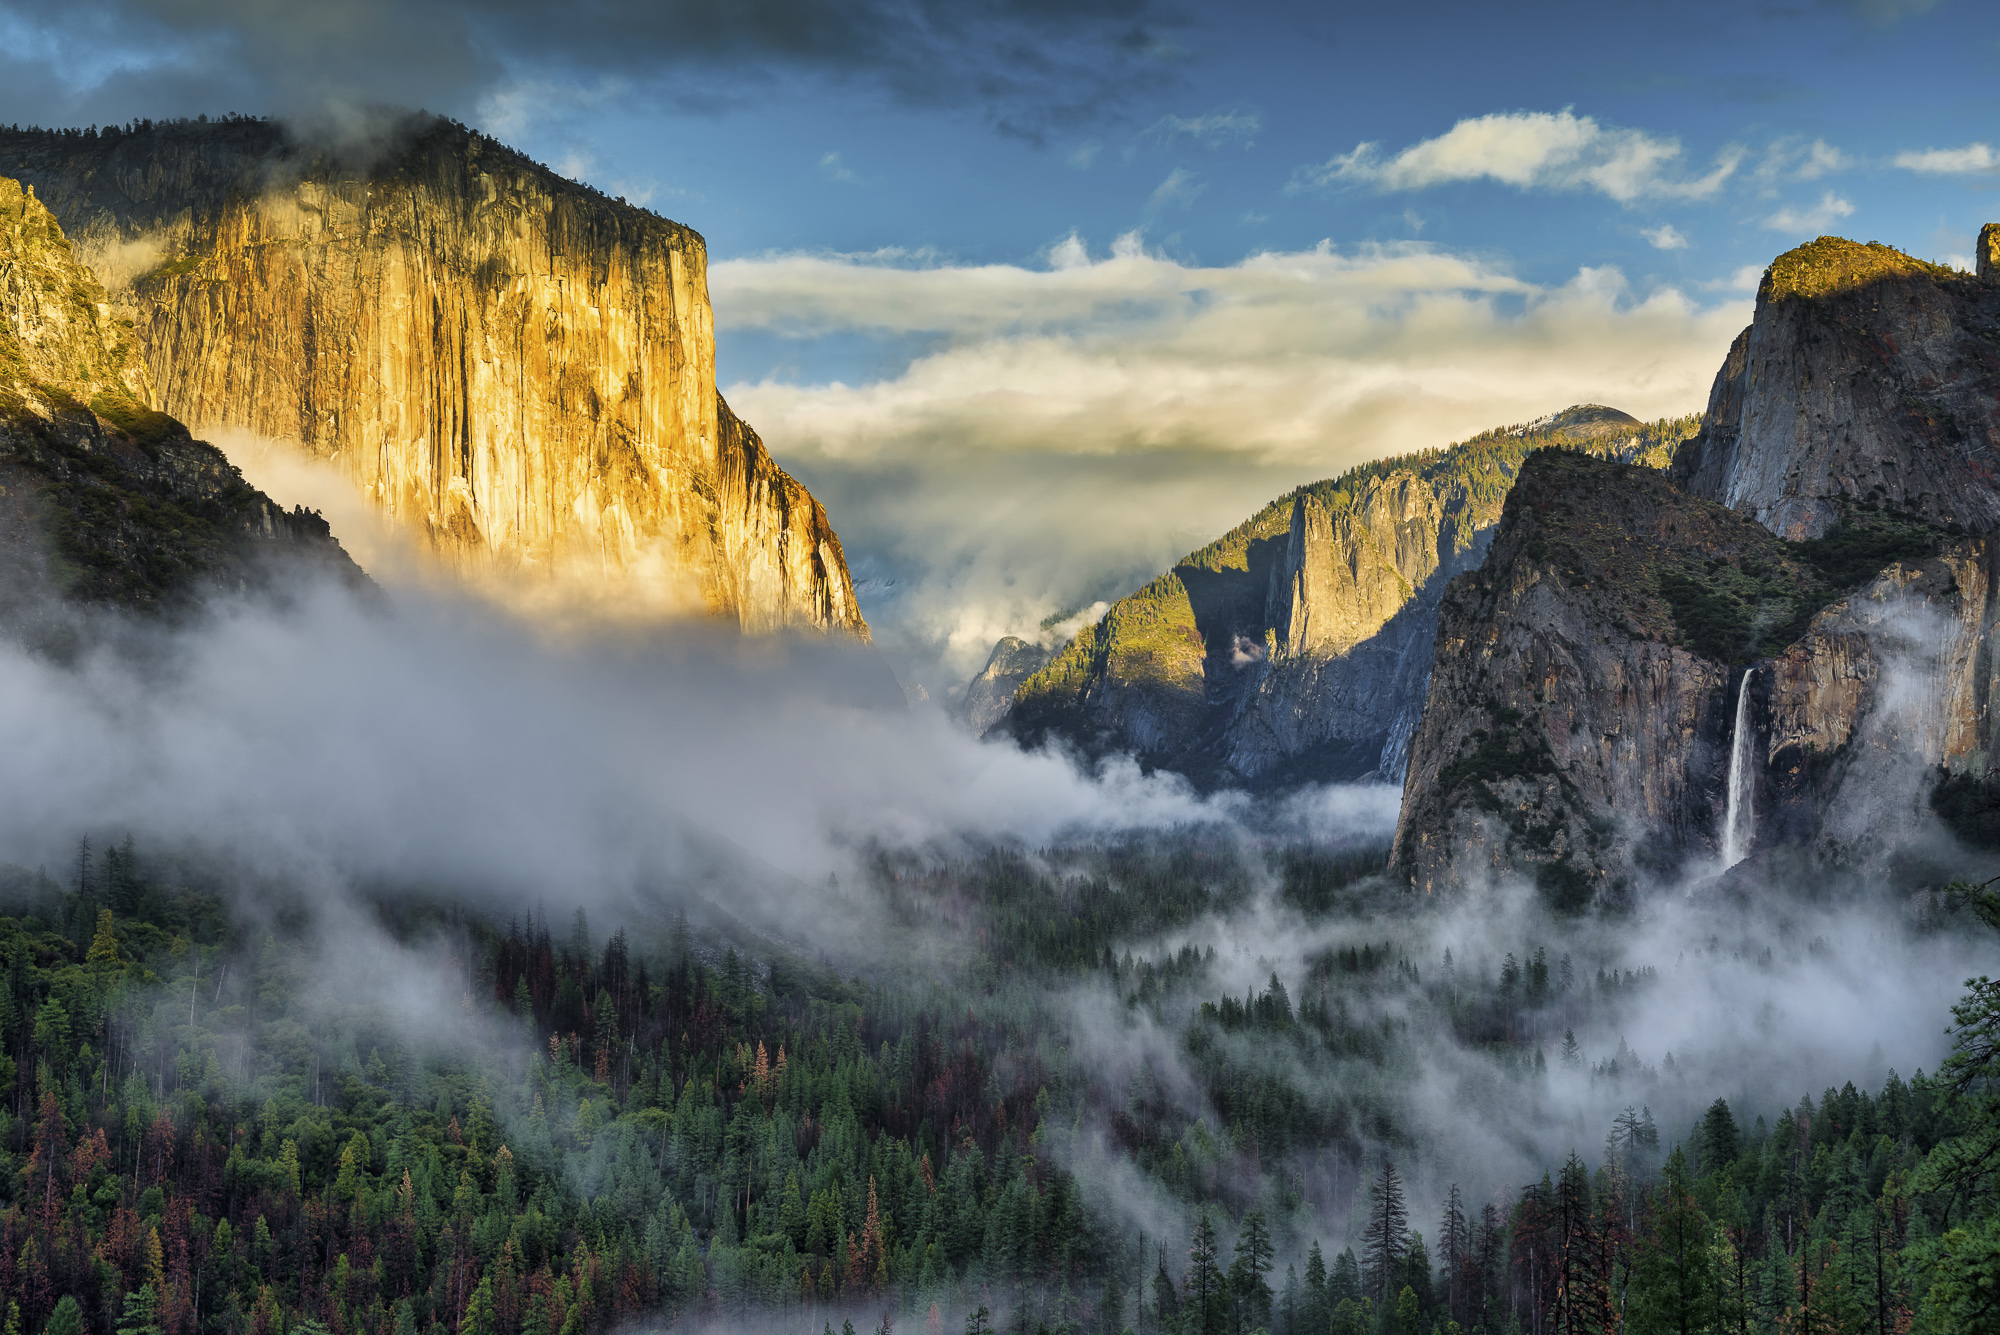 Mist in Yosemite Valley from Tunnel View, Yosemite National Park, California, USA